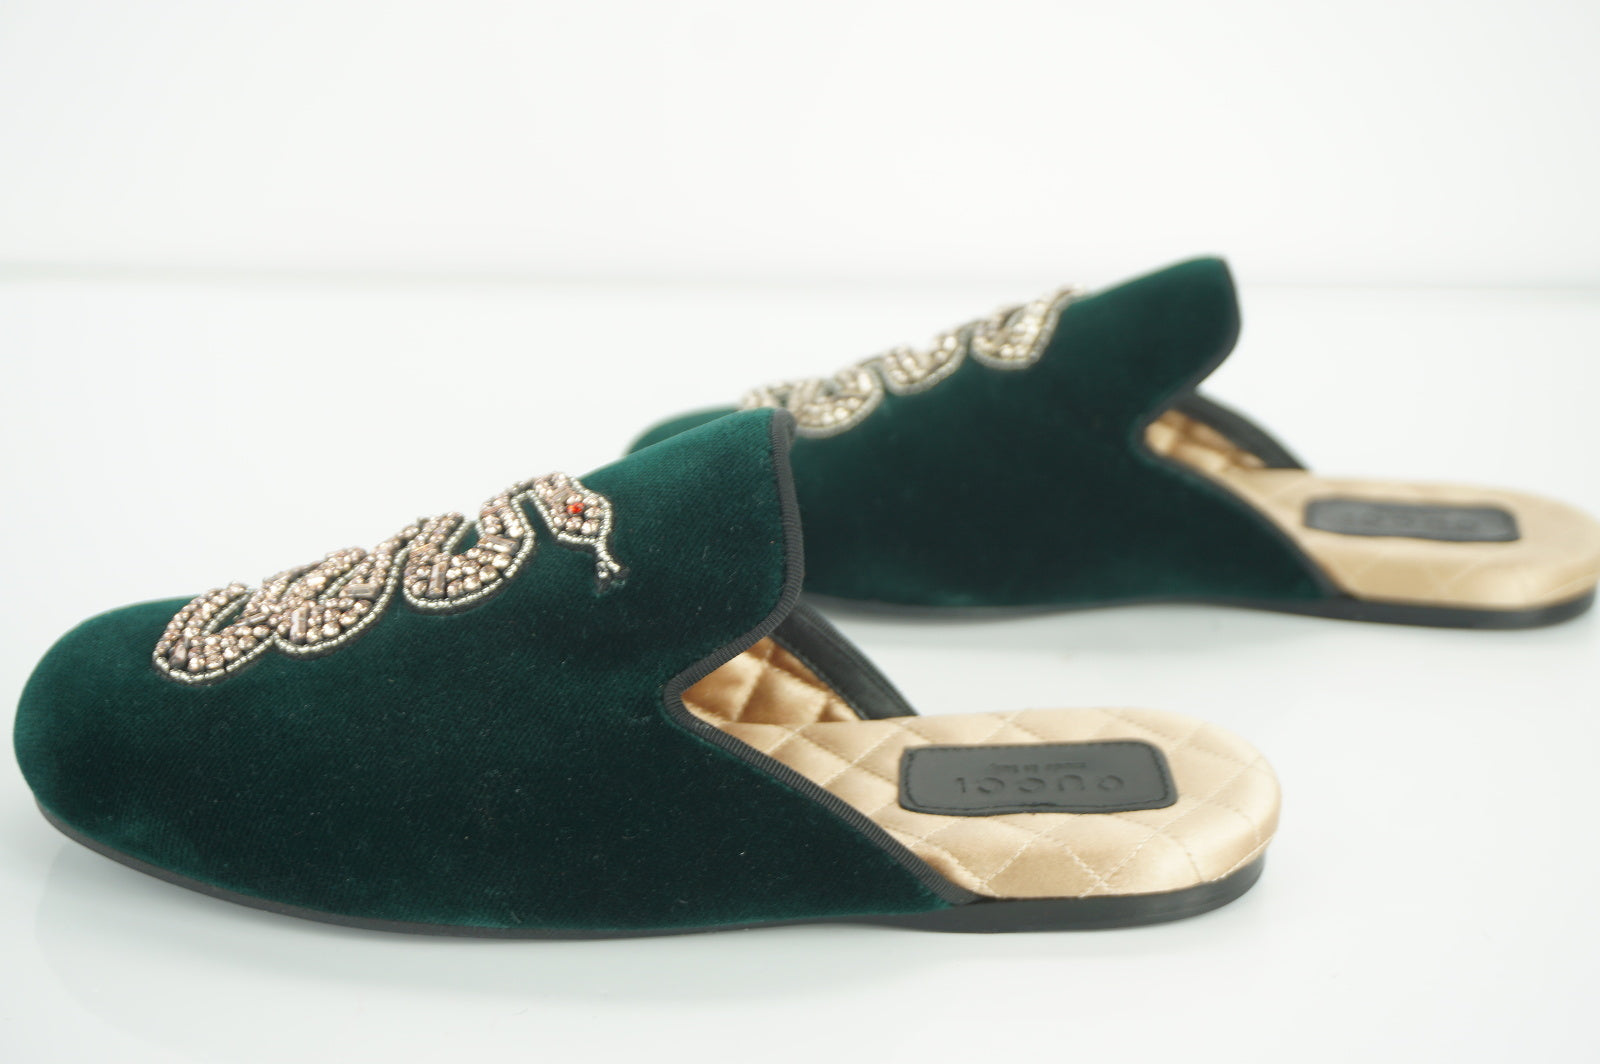 Gucci Womens Lawrence Mule Slipper Green Velvet Size 35